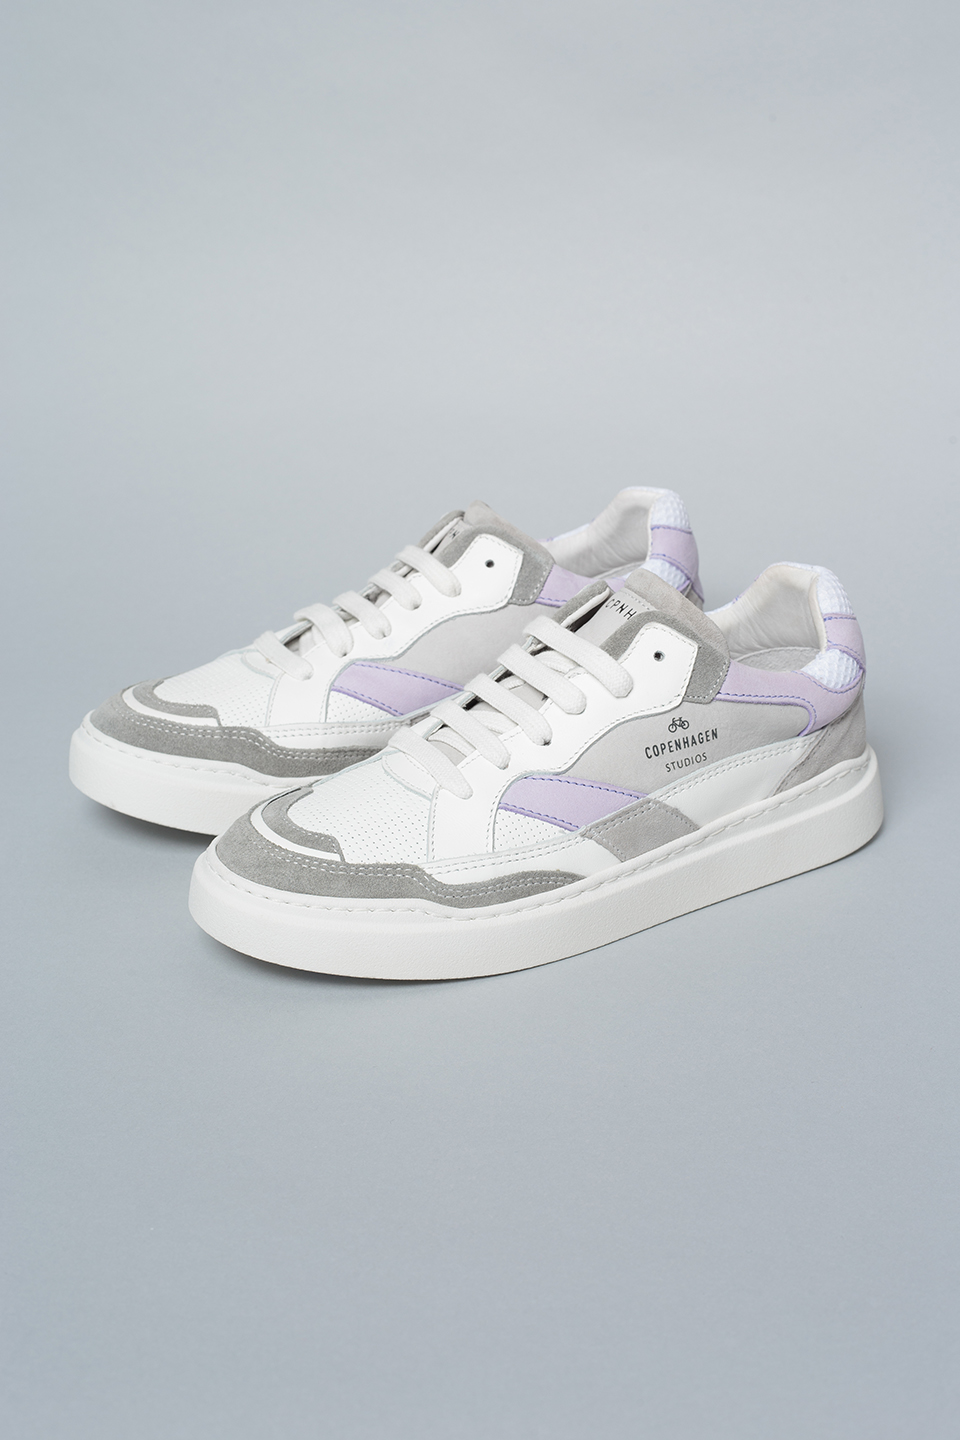 CPH560 material mix white/lavender - alternative 2